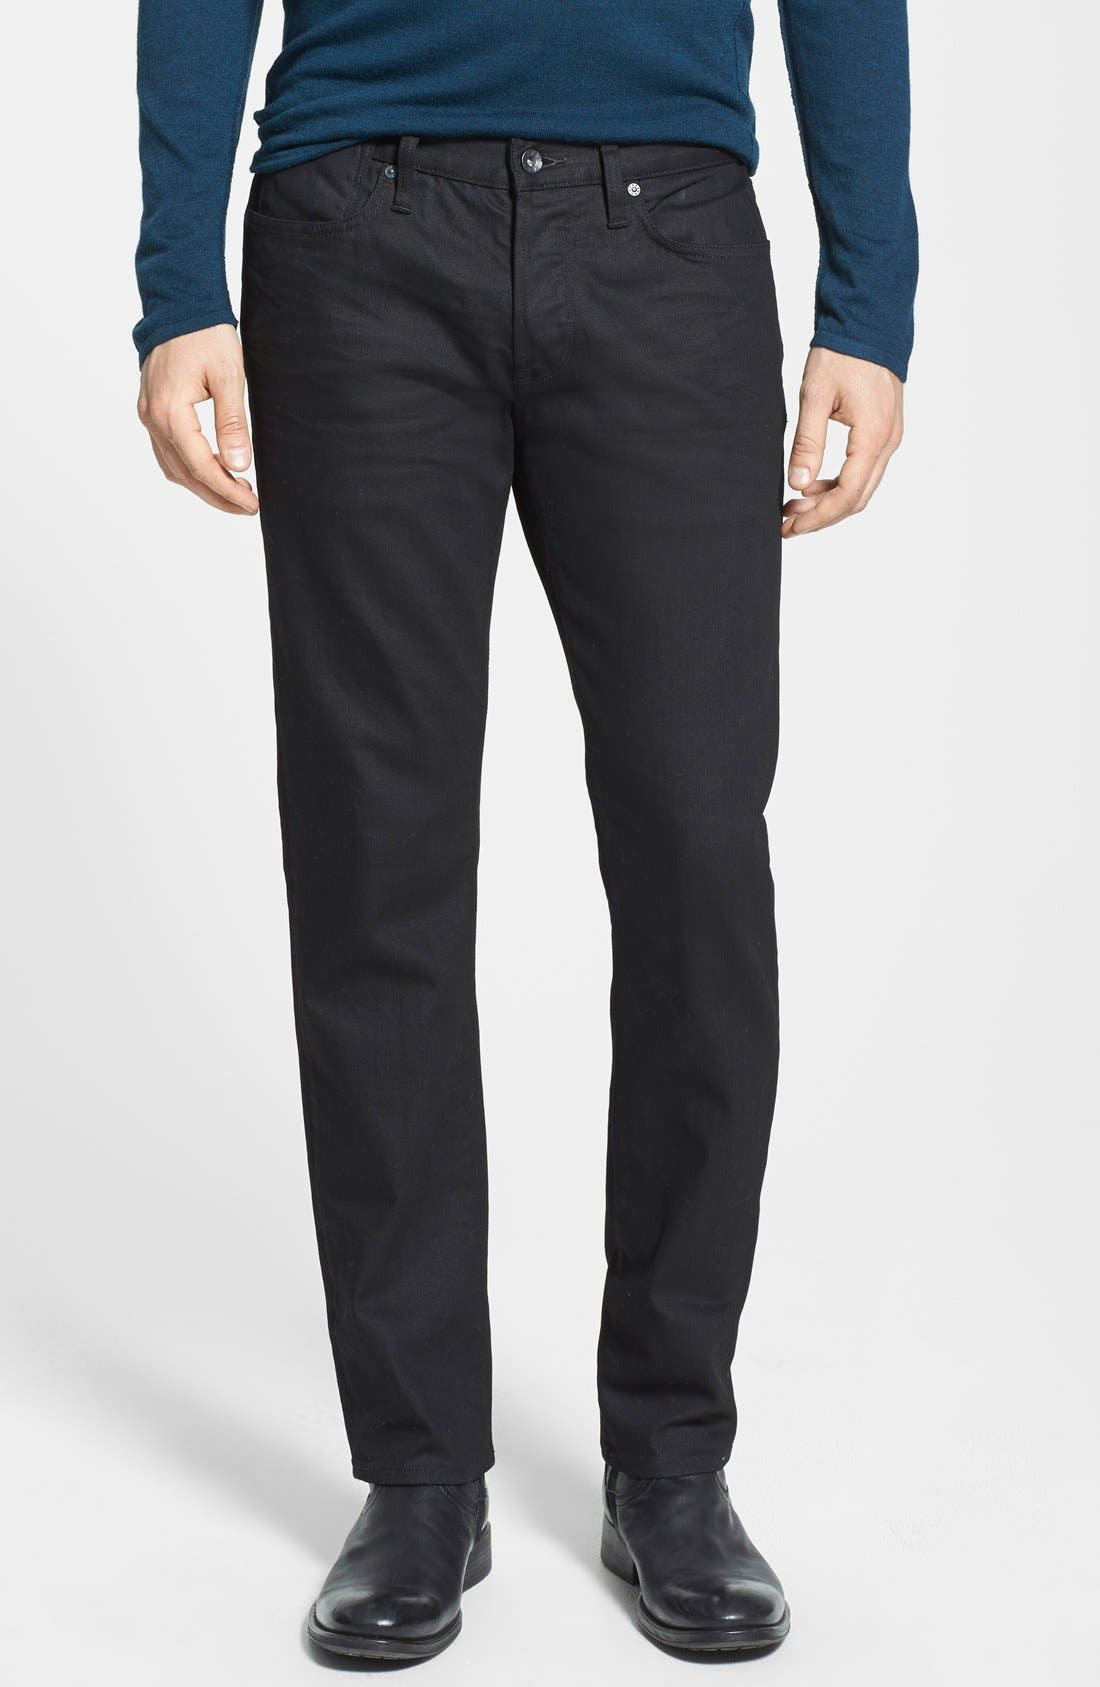 John Varvatos Star USA 'Bowery' Slim Straight Leg Jeans (Jet Black)